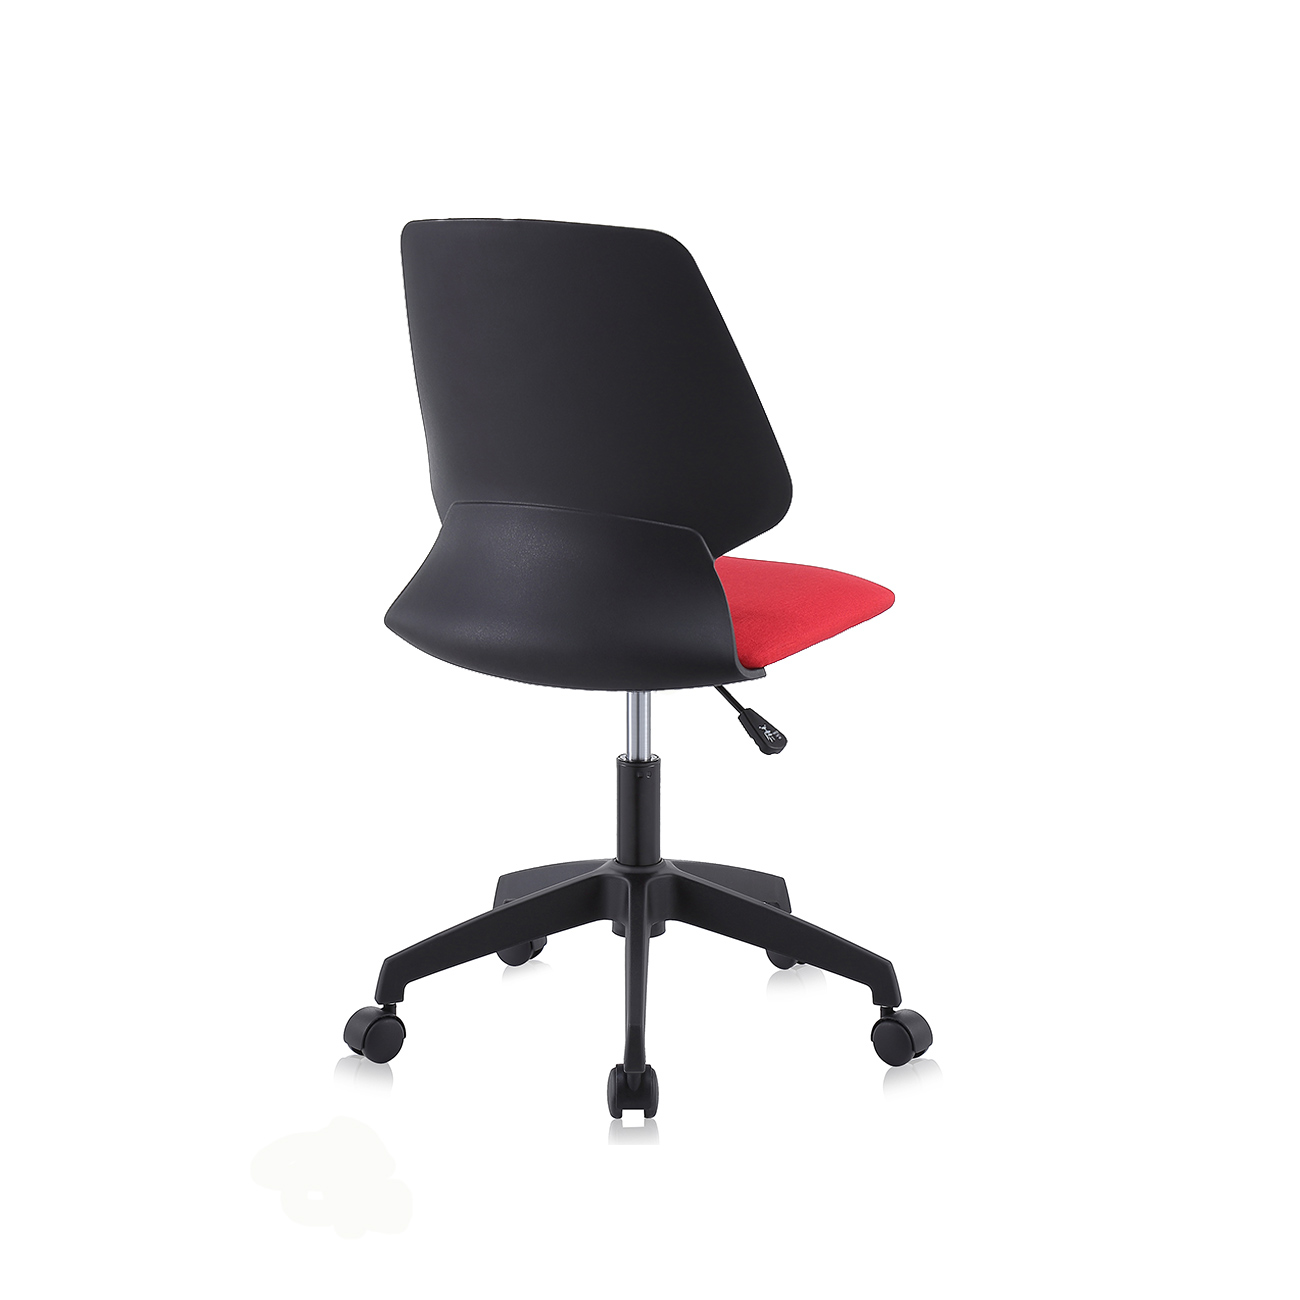 chairs that sit on the floor single lounge chair covers my office design stool swivel neo with